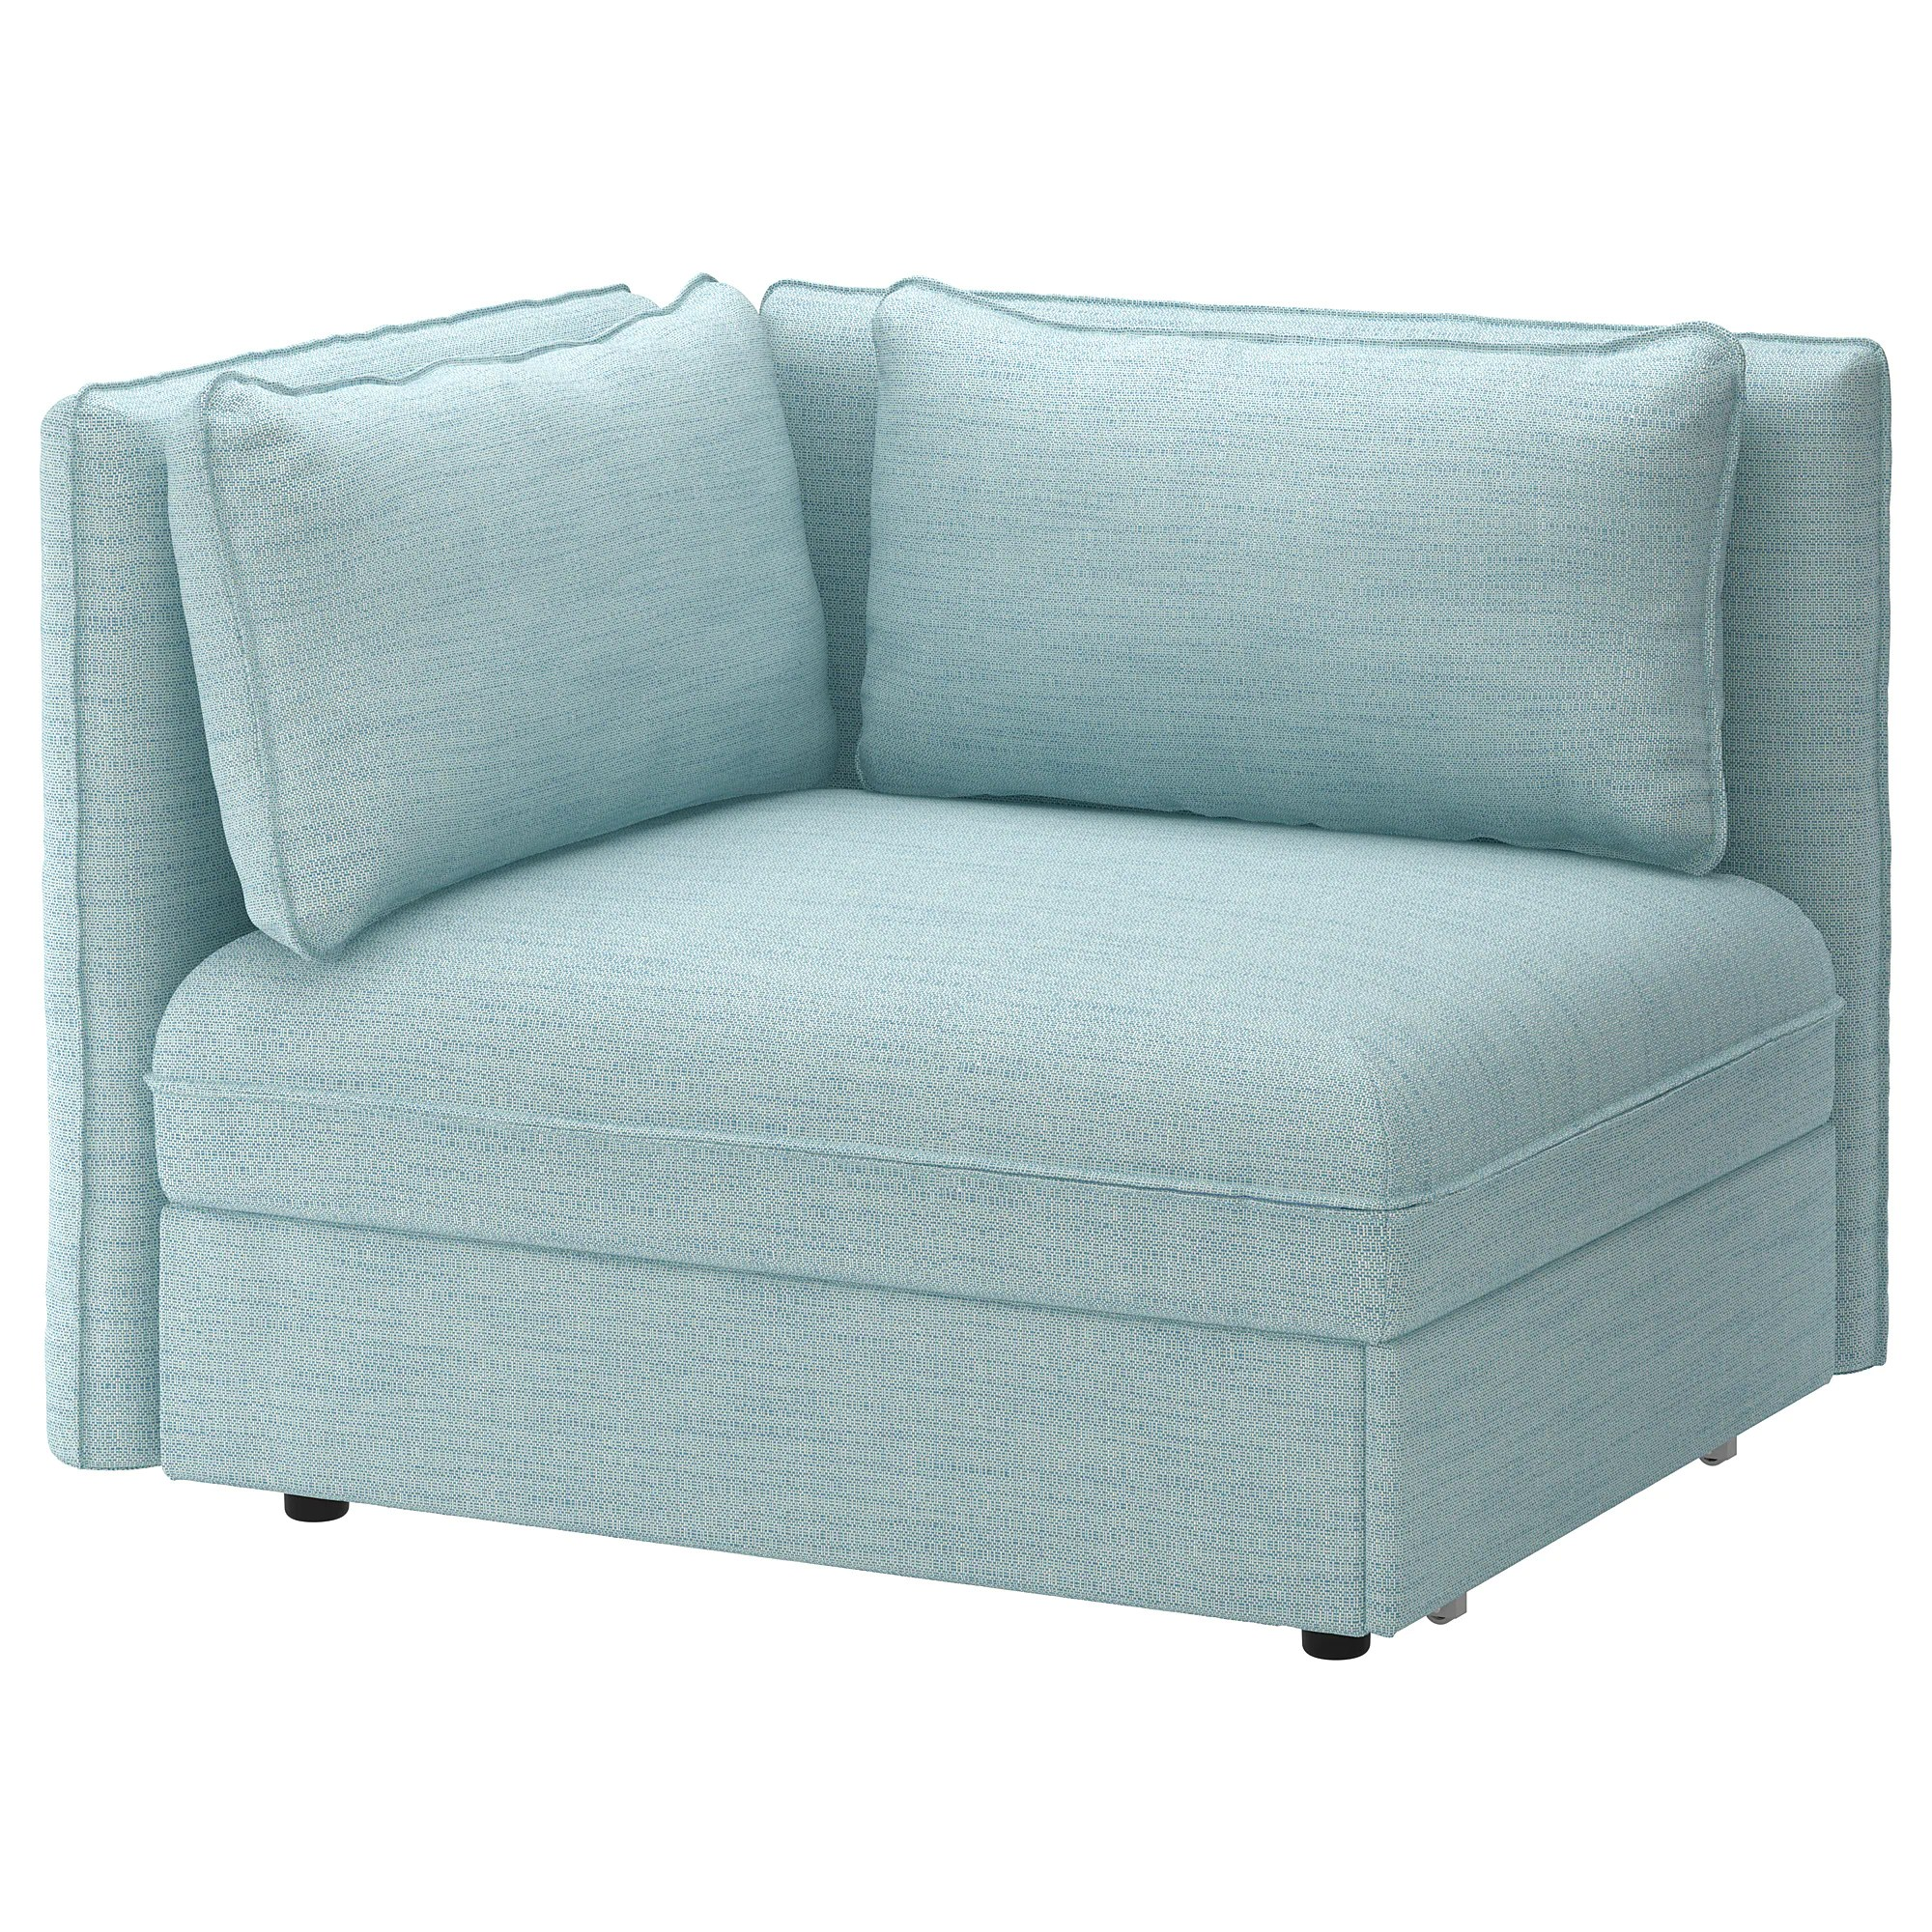 Sofa Module Sofa Bed Module With Backrests Vallentuna Hillared Light Blue